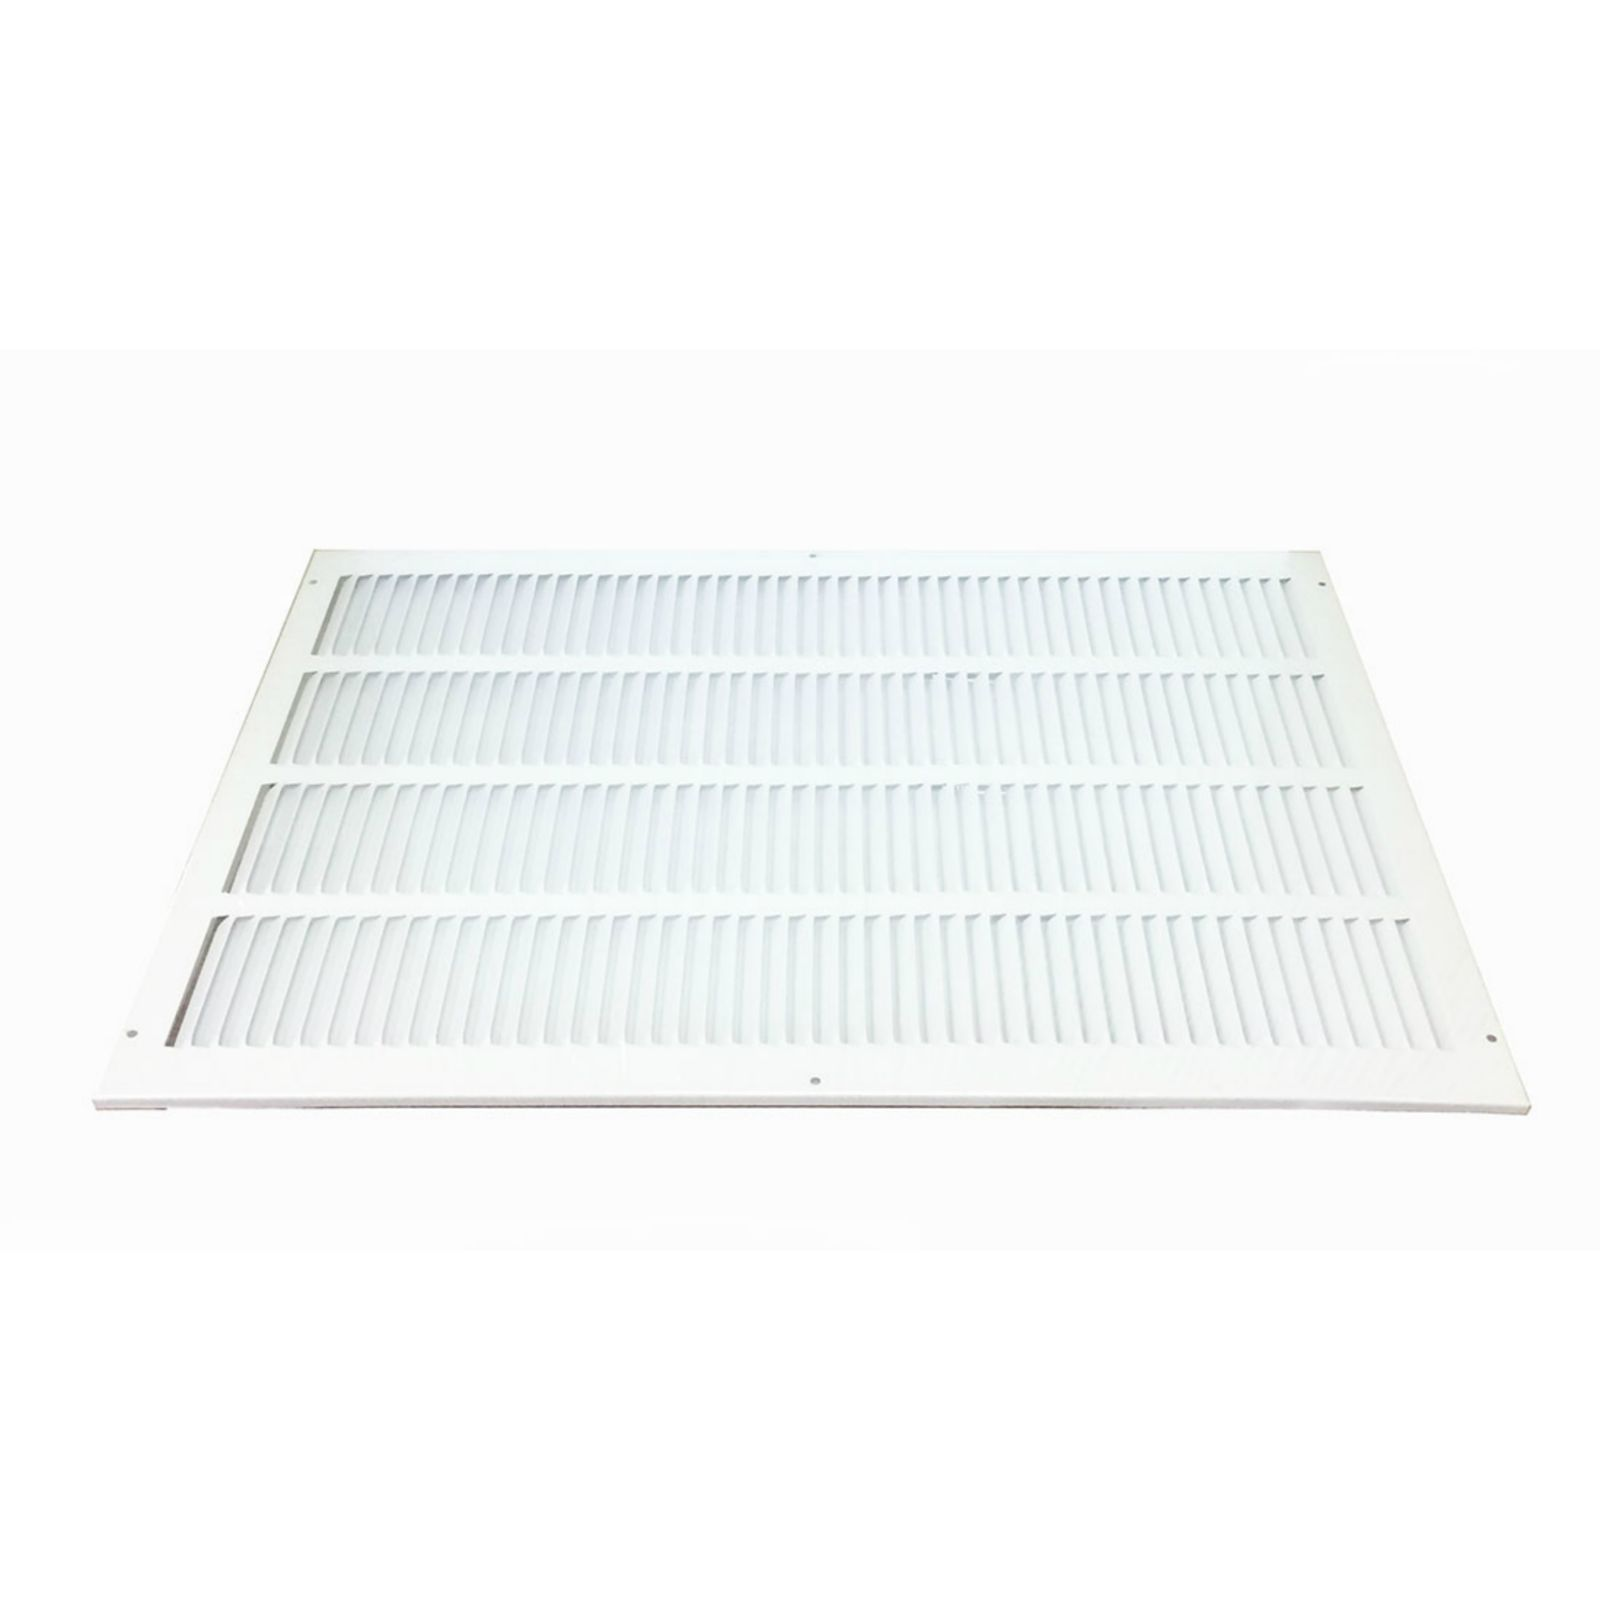 "Grille Tech RAG24X20W - Steel Return Air Grille, 24"" X 20"" White"